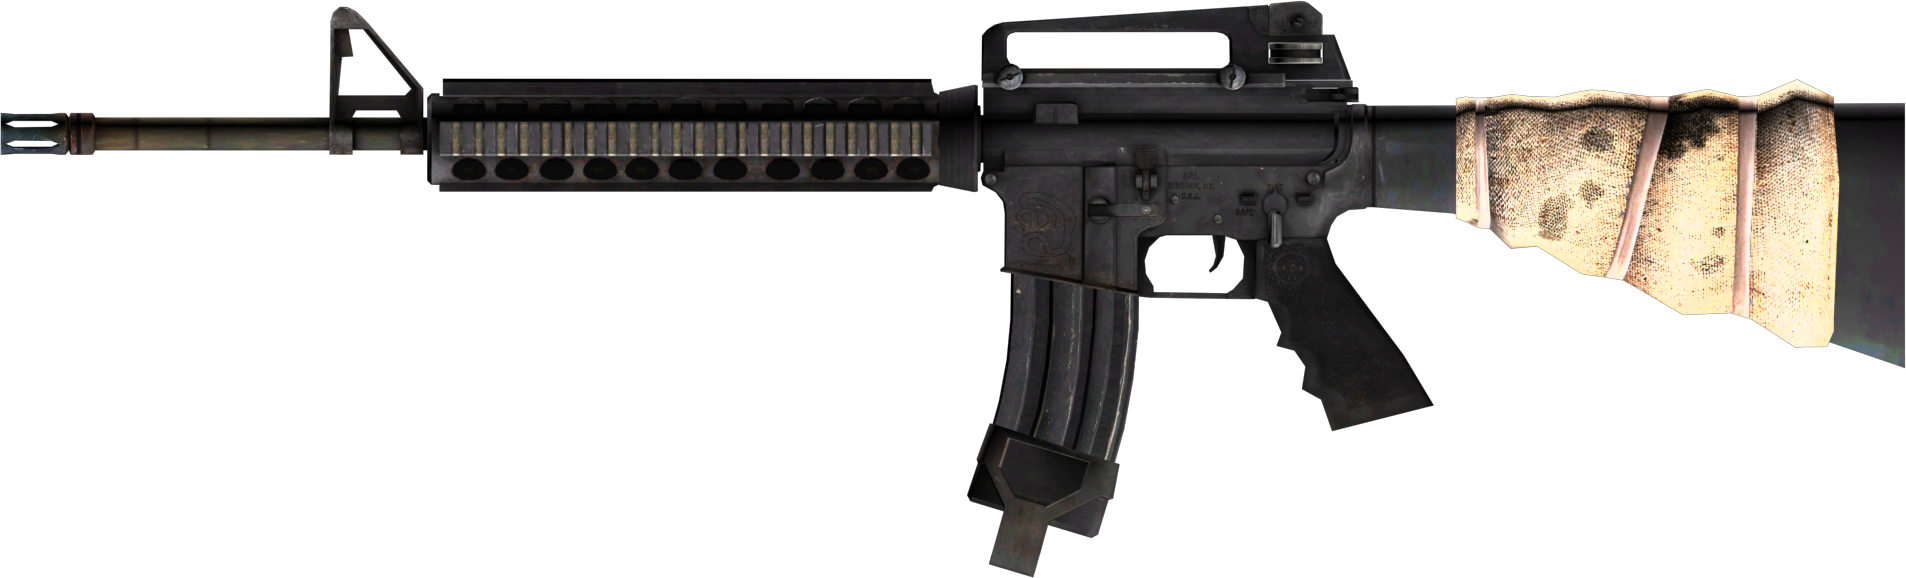 Rifle .png. Assault png images free